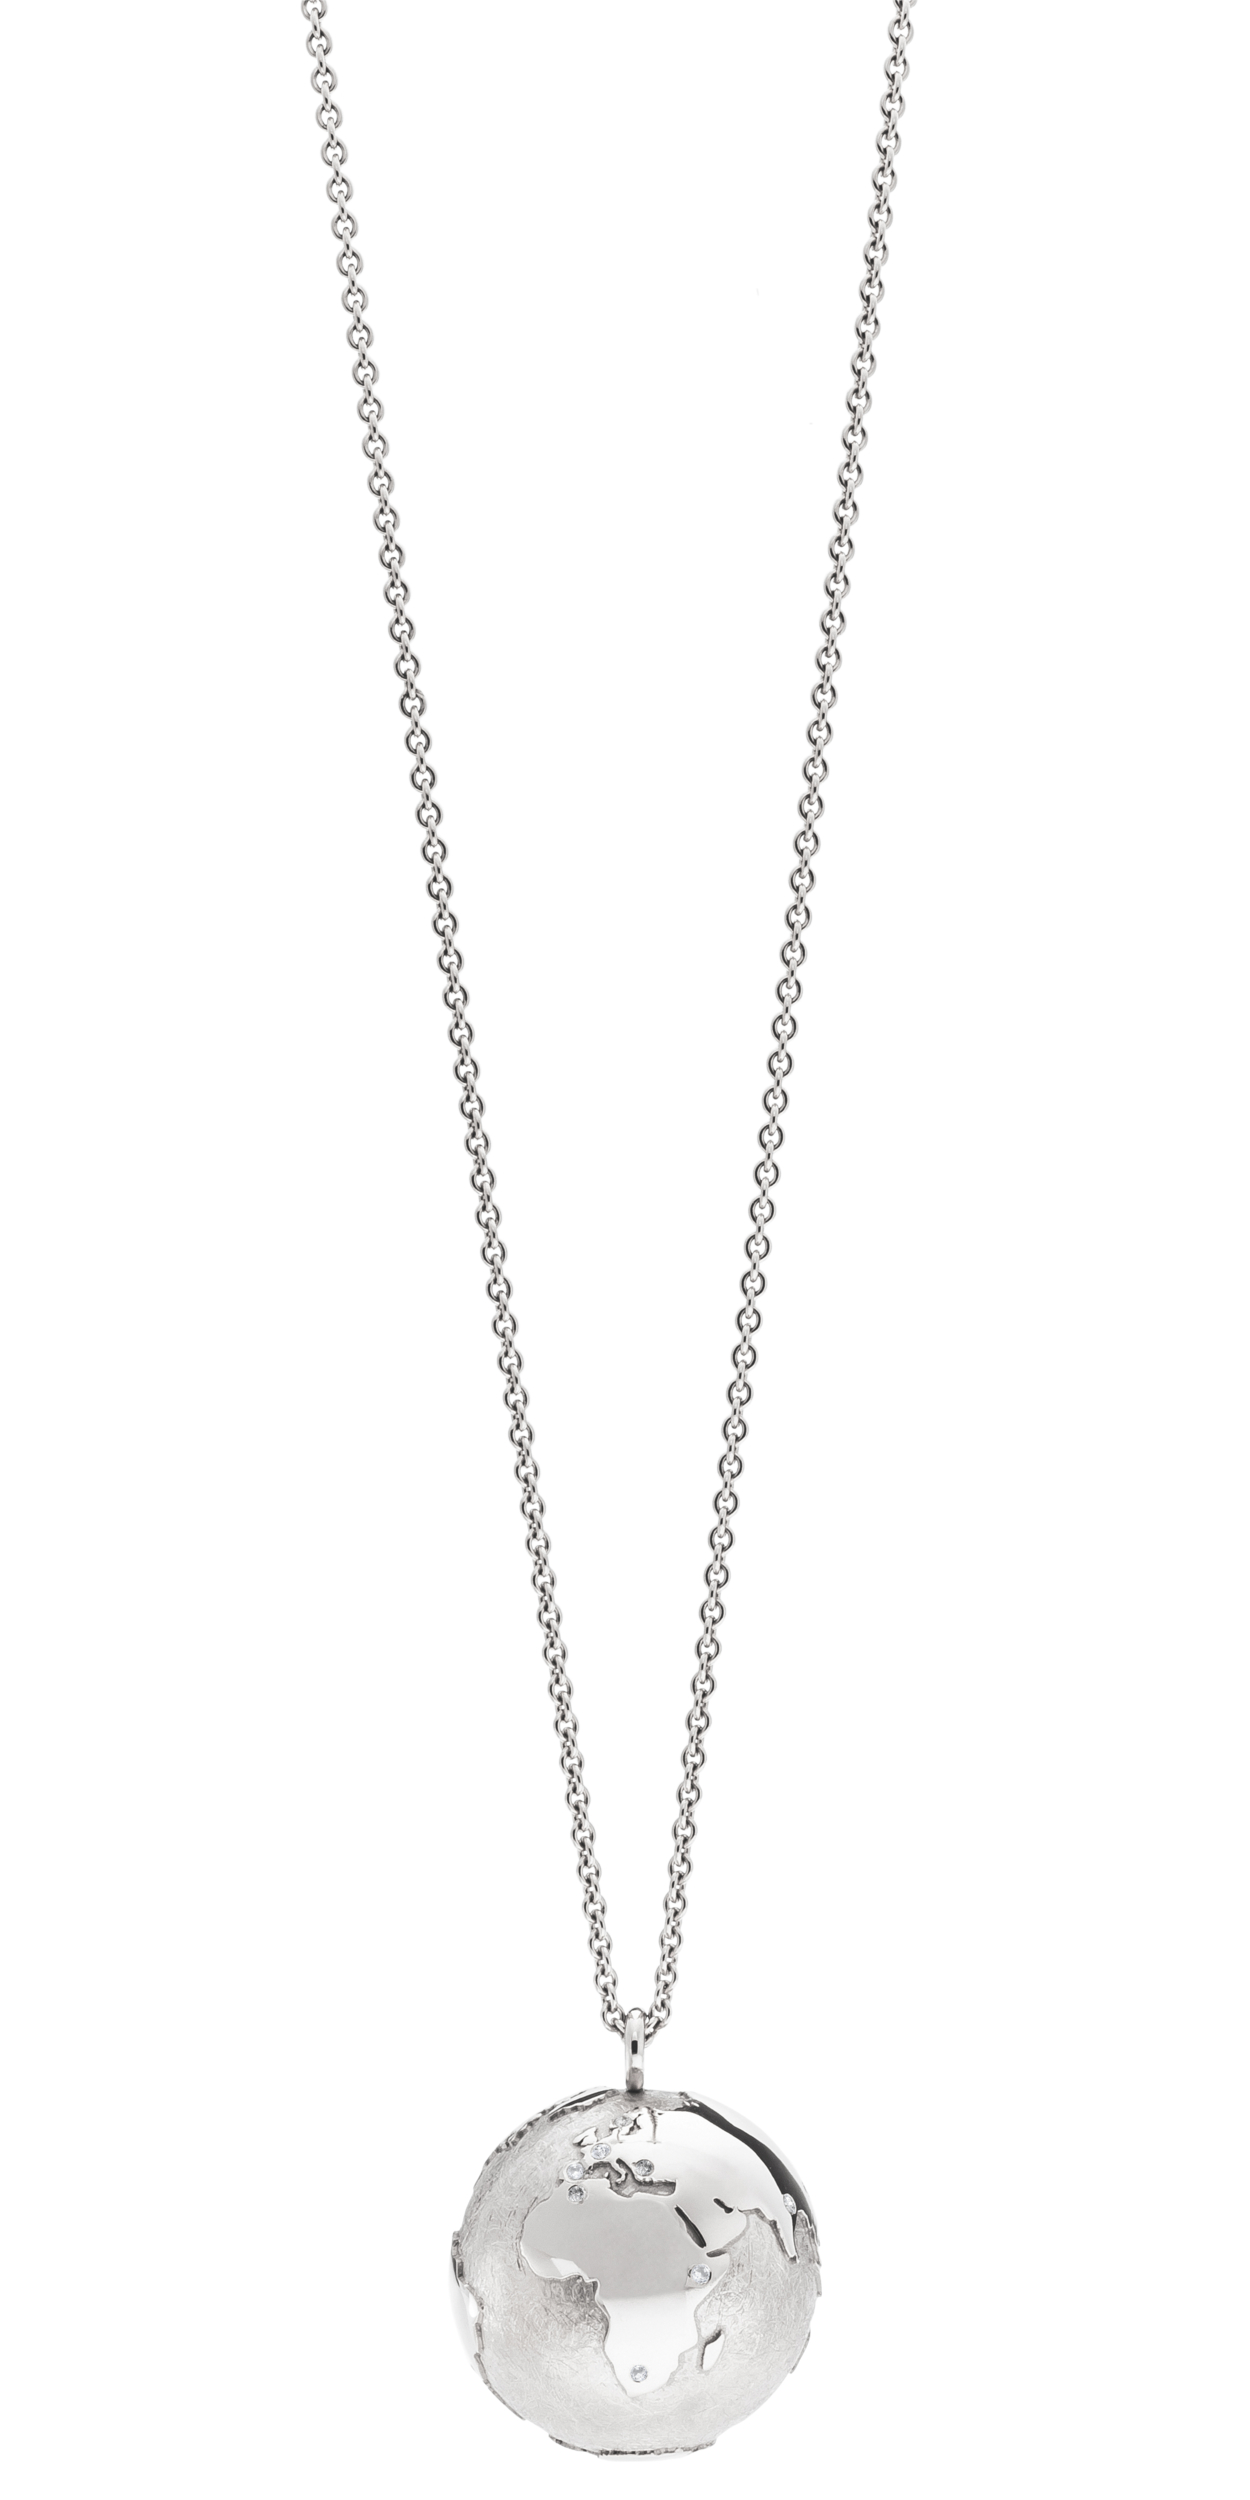 Necklace MY WORLD platinum earth pendant 23 mm and chain 90 cm